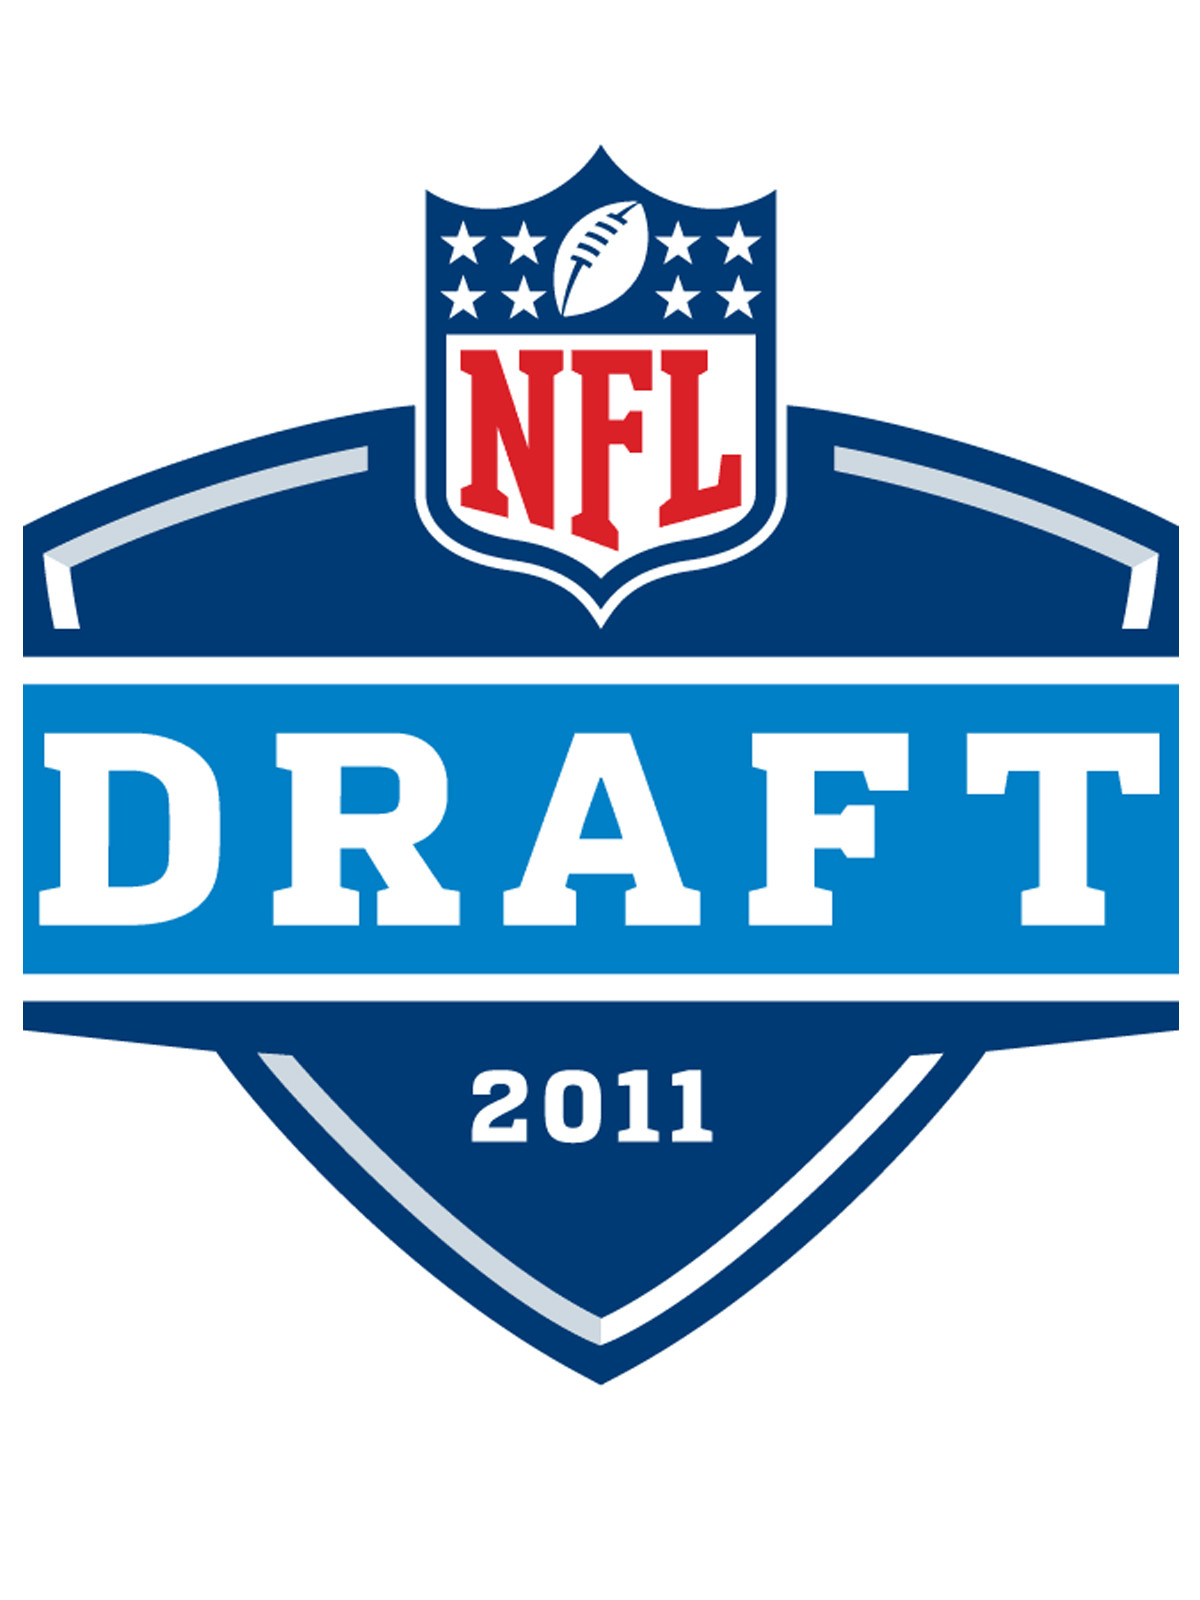 News_NFL Draft 2011